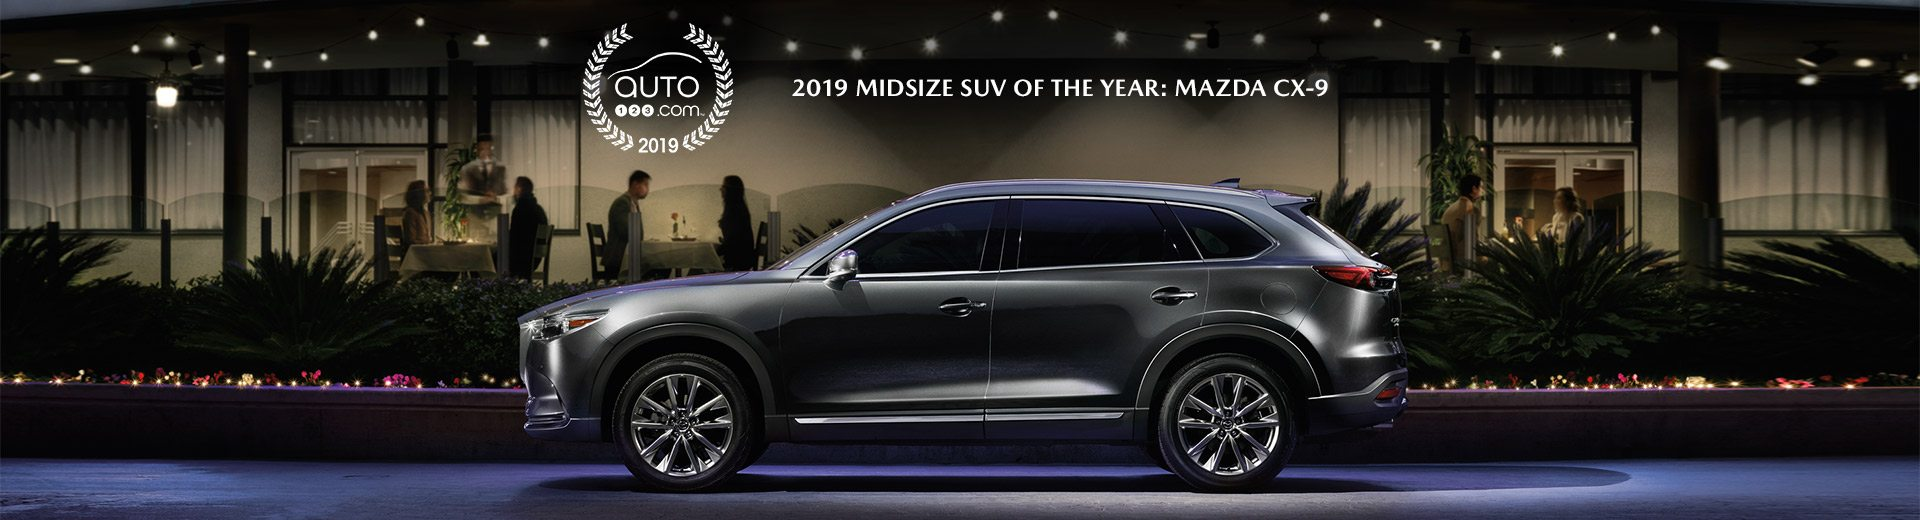 Best mid size cx-9 award